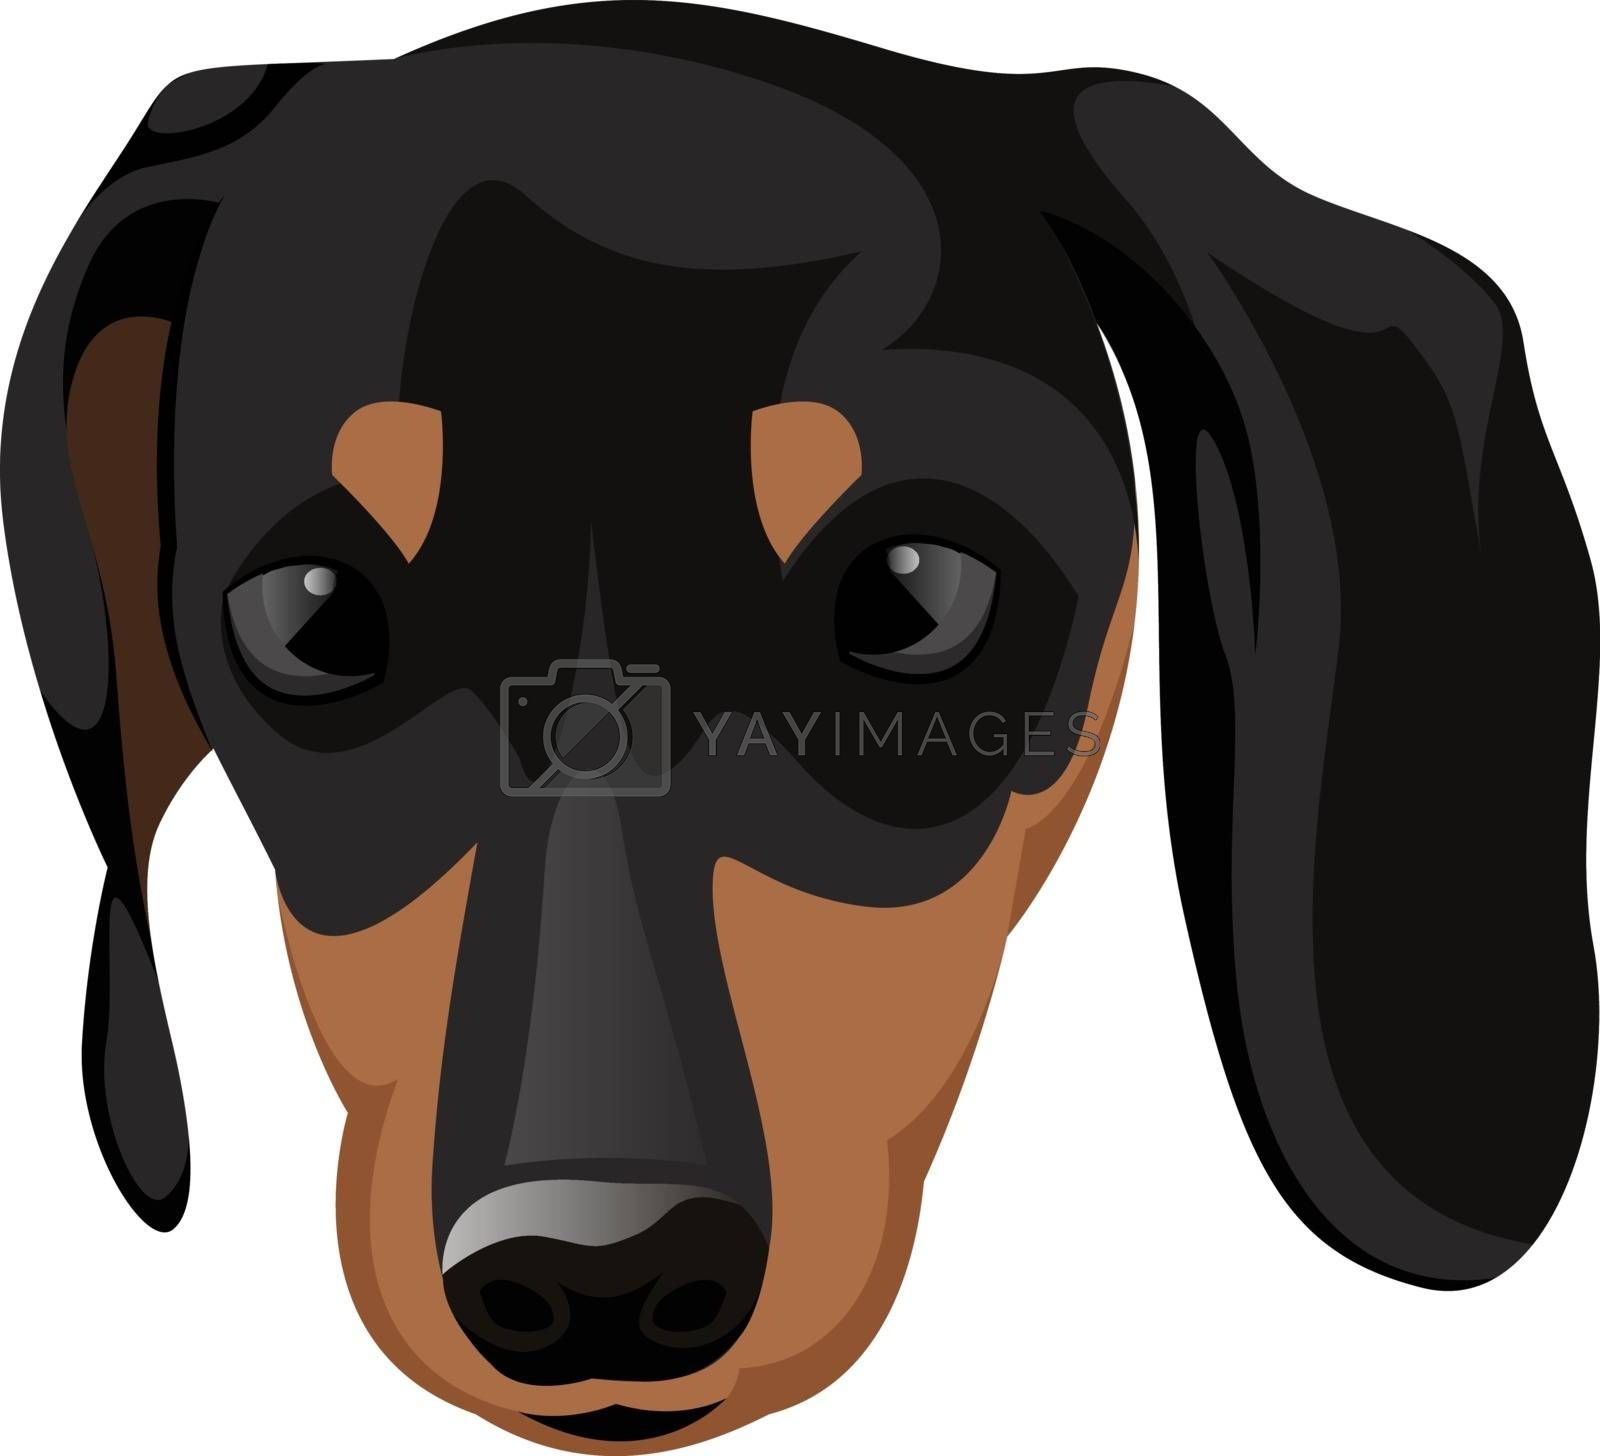 Royalty free image of Small Doberman illustration vector on white background by Morphart